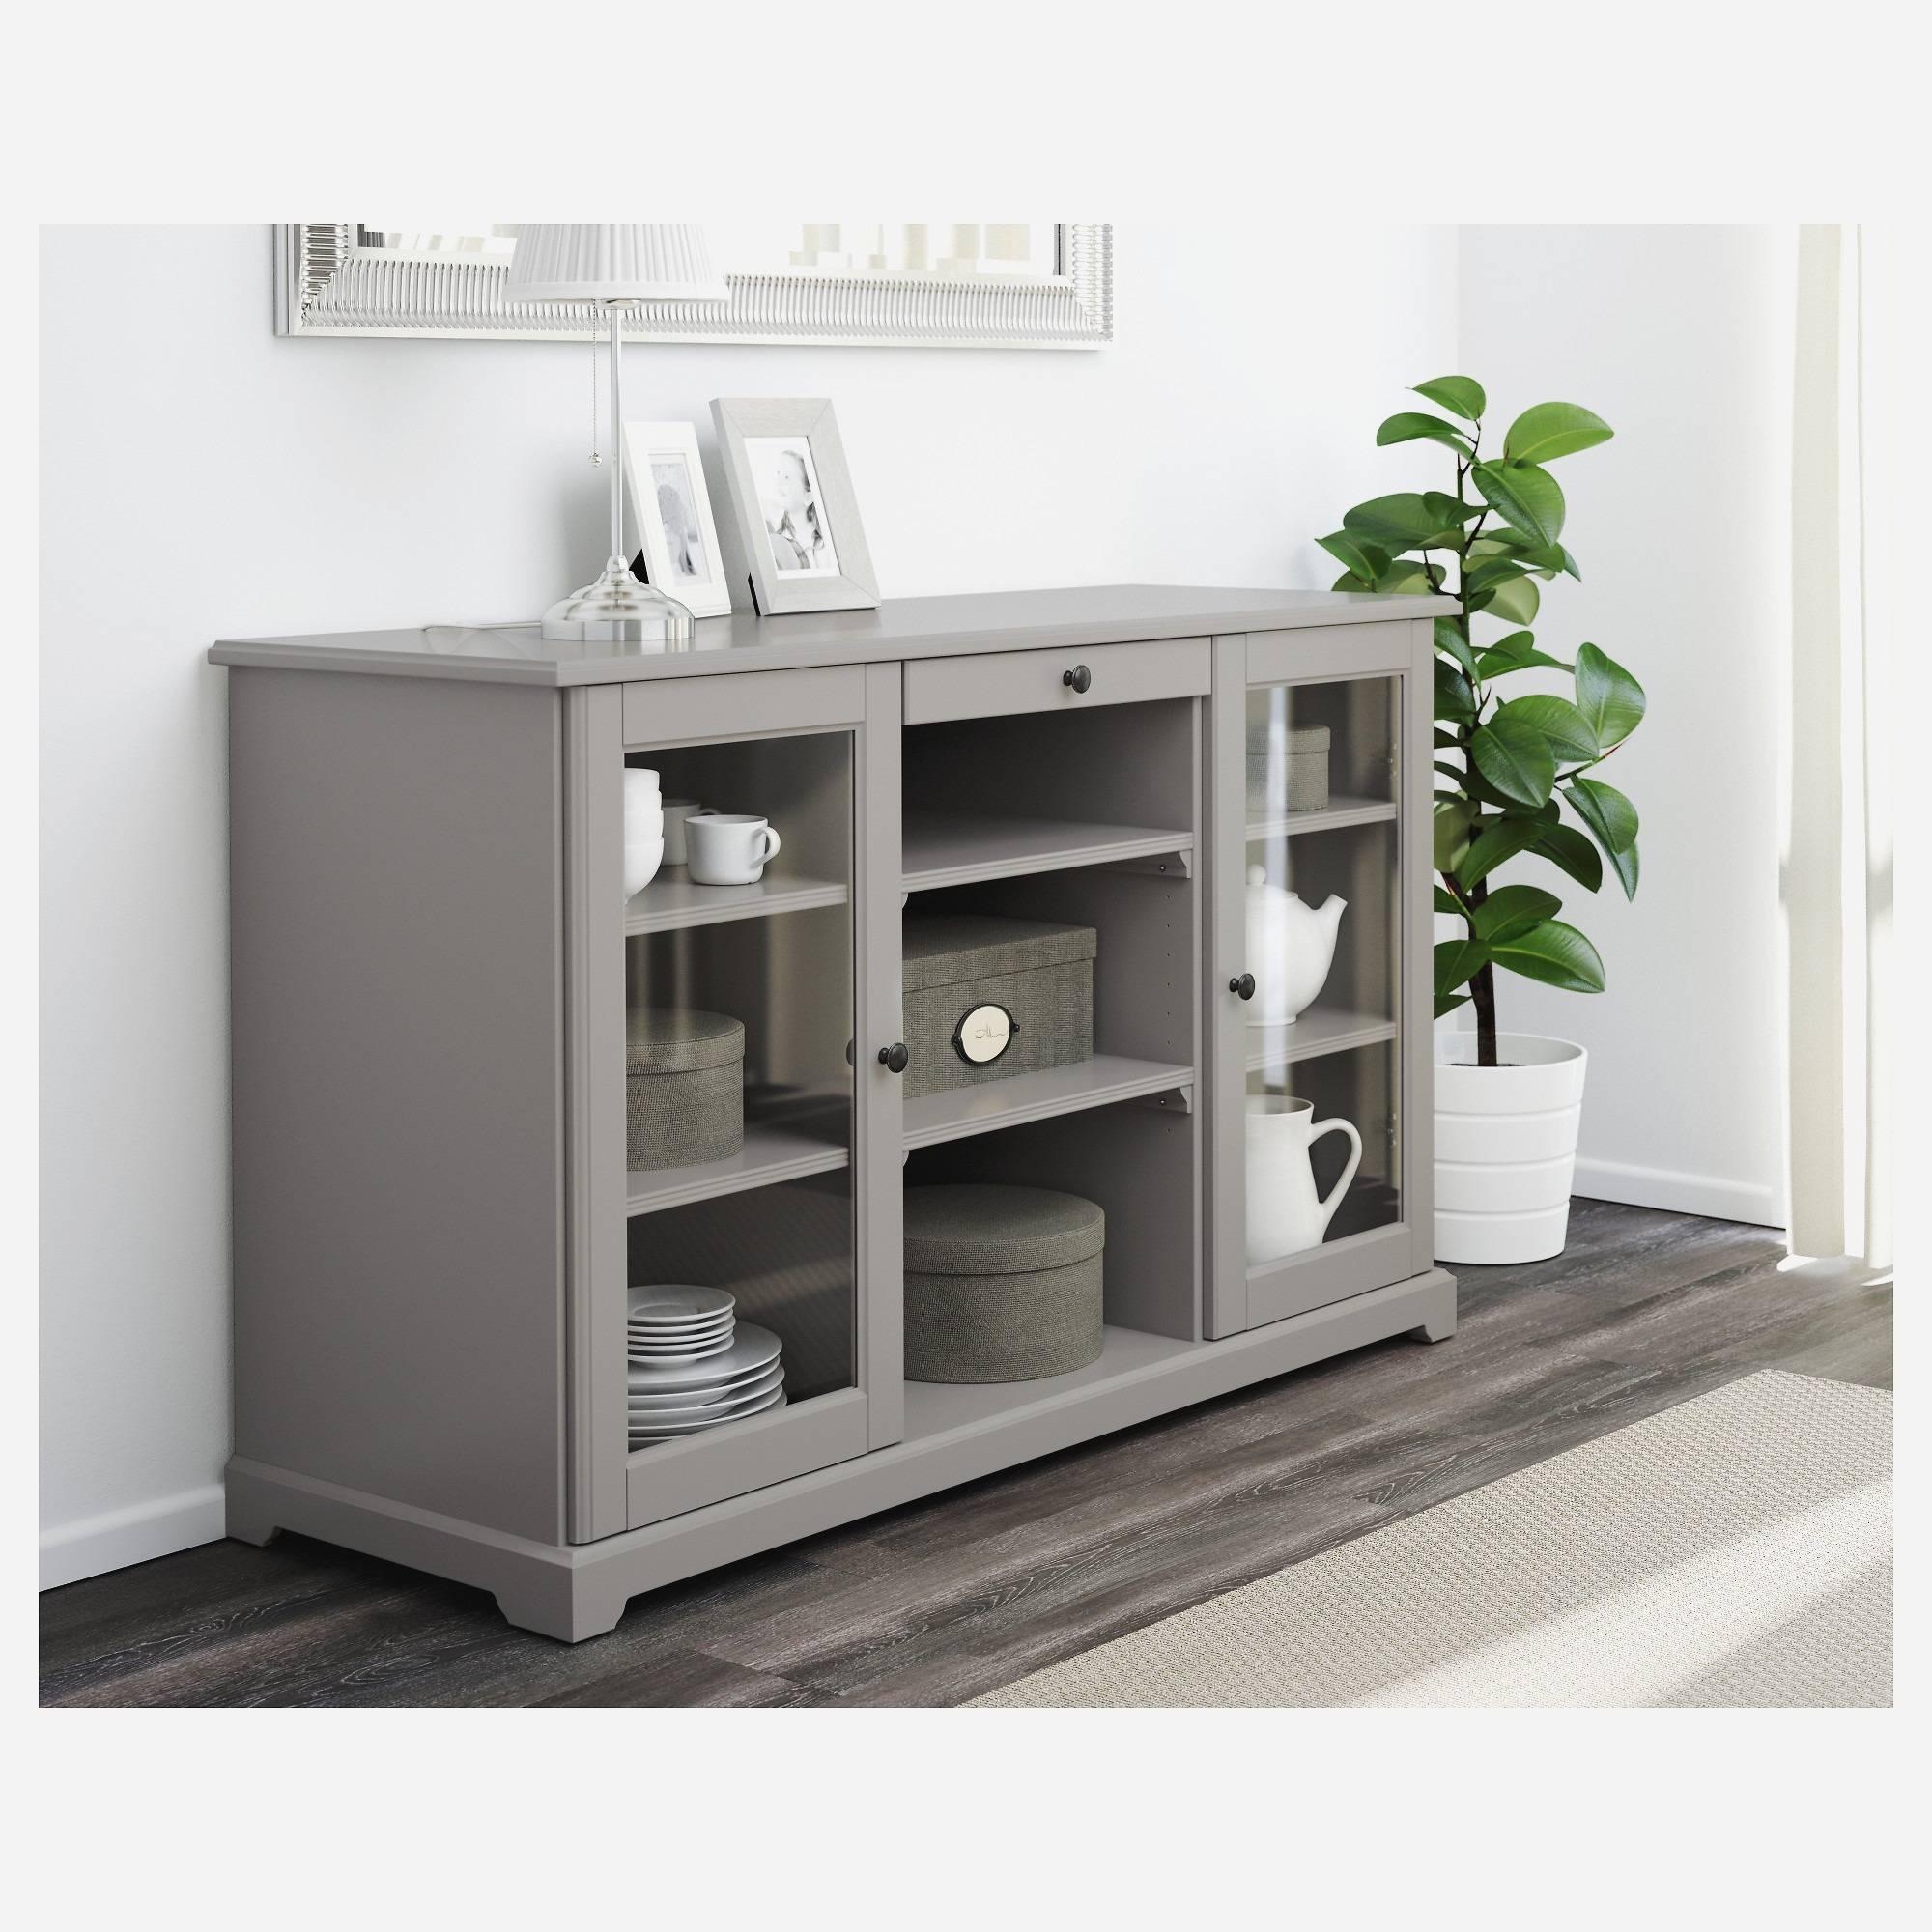 Ikea Buffets. Cheap Image Of Buffet Cabinet Ikea For Kitchen With with regard to Liatorp Sideboards (Image 3 of 15)